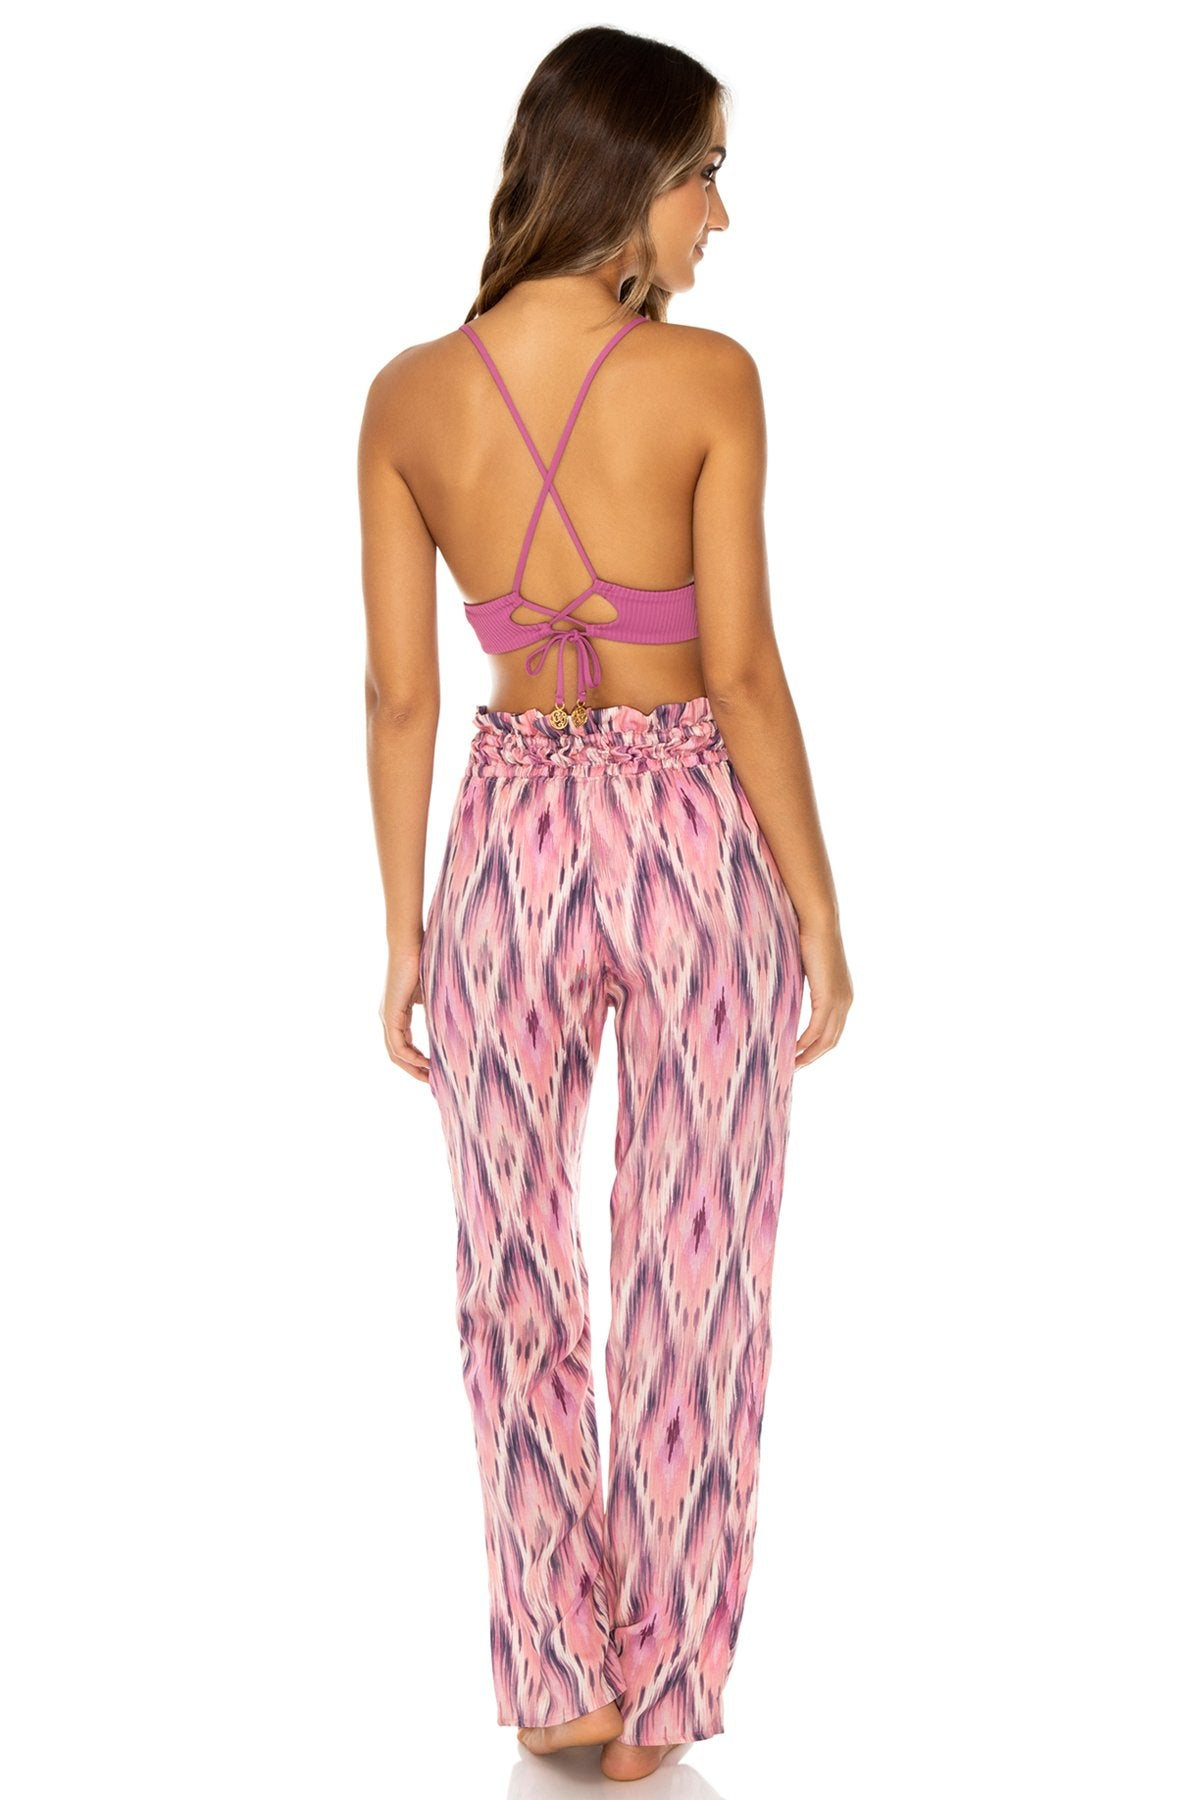 CADIZ - Cross Back Bustier Top & Paper Bag Pants • Multicolor